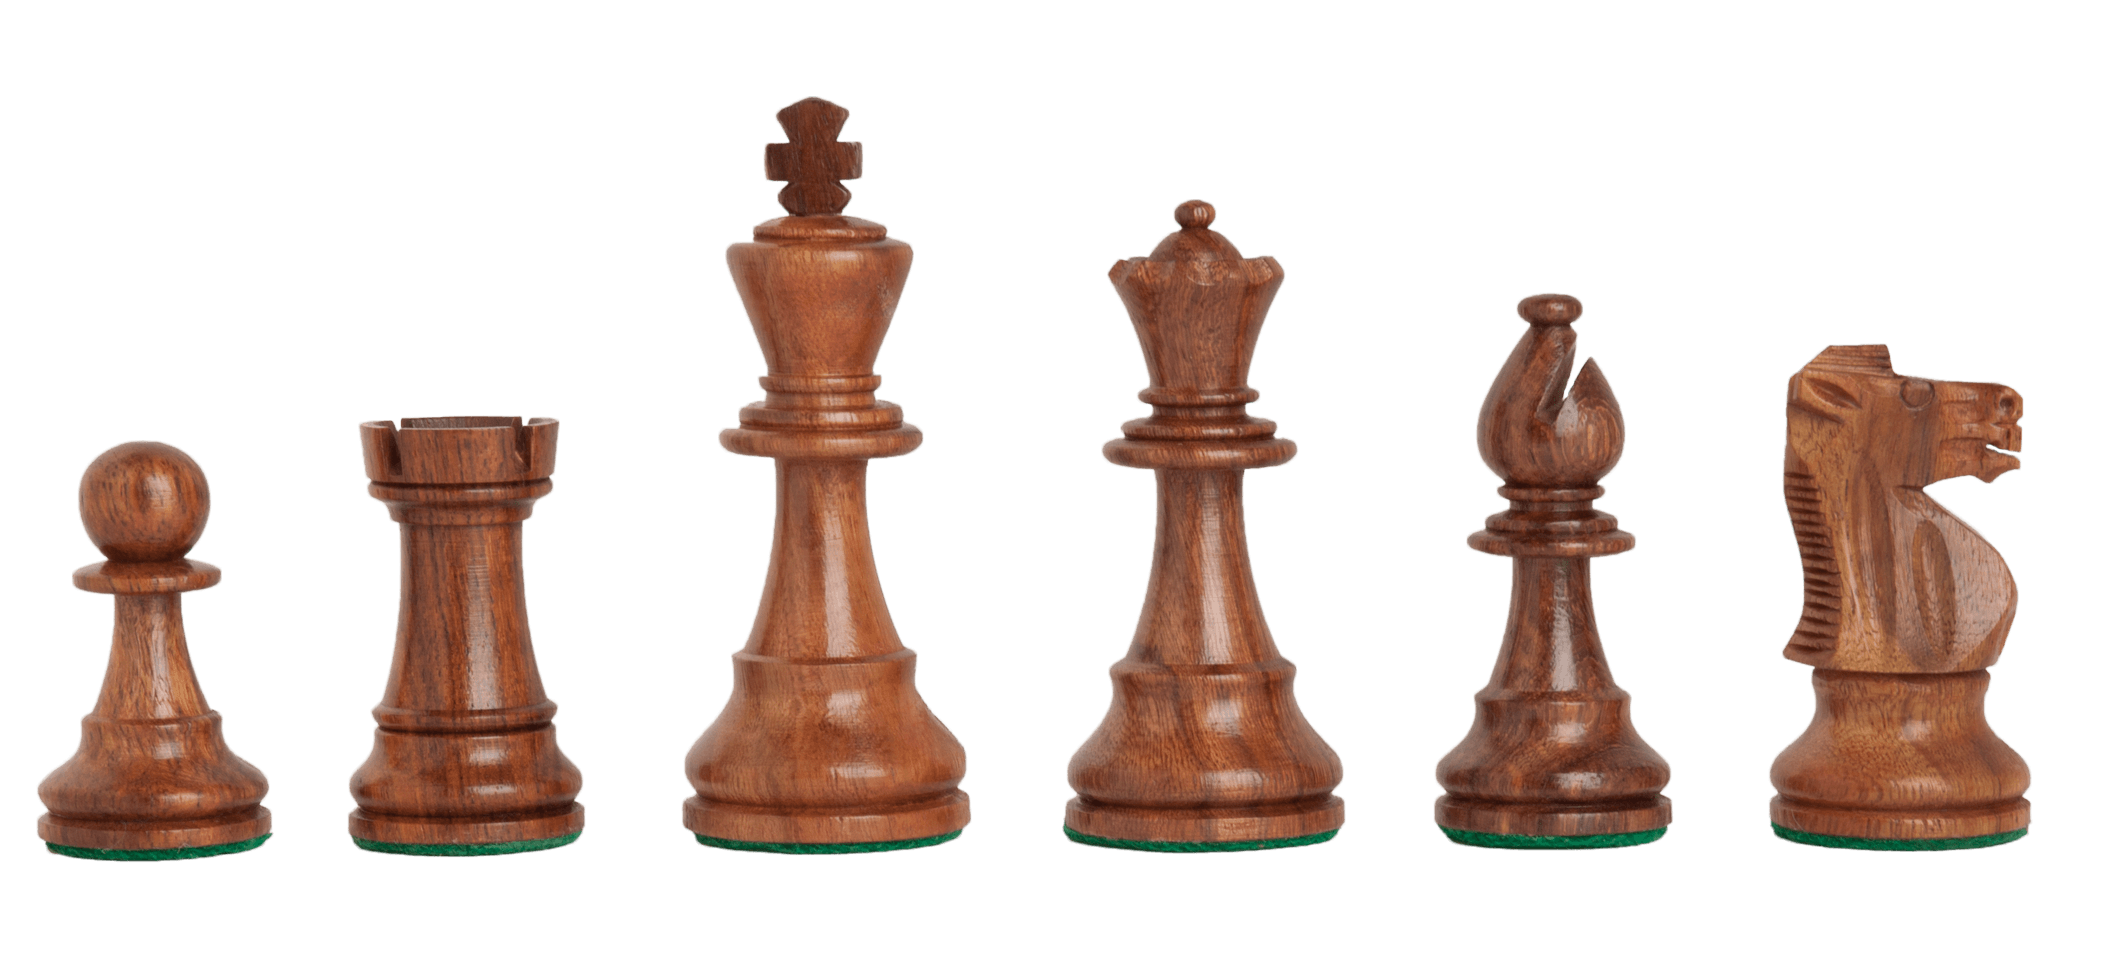 c665db4186a The French Lardy Series Chess Set - 3.75